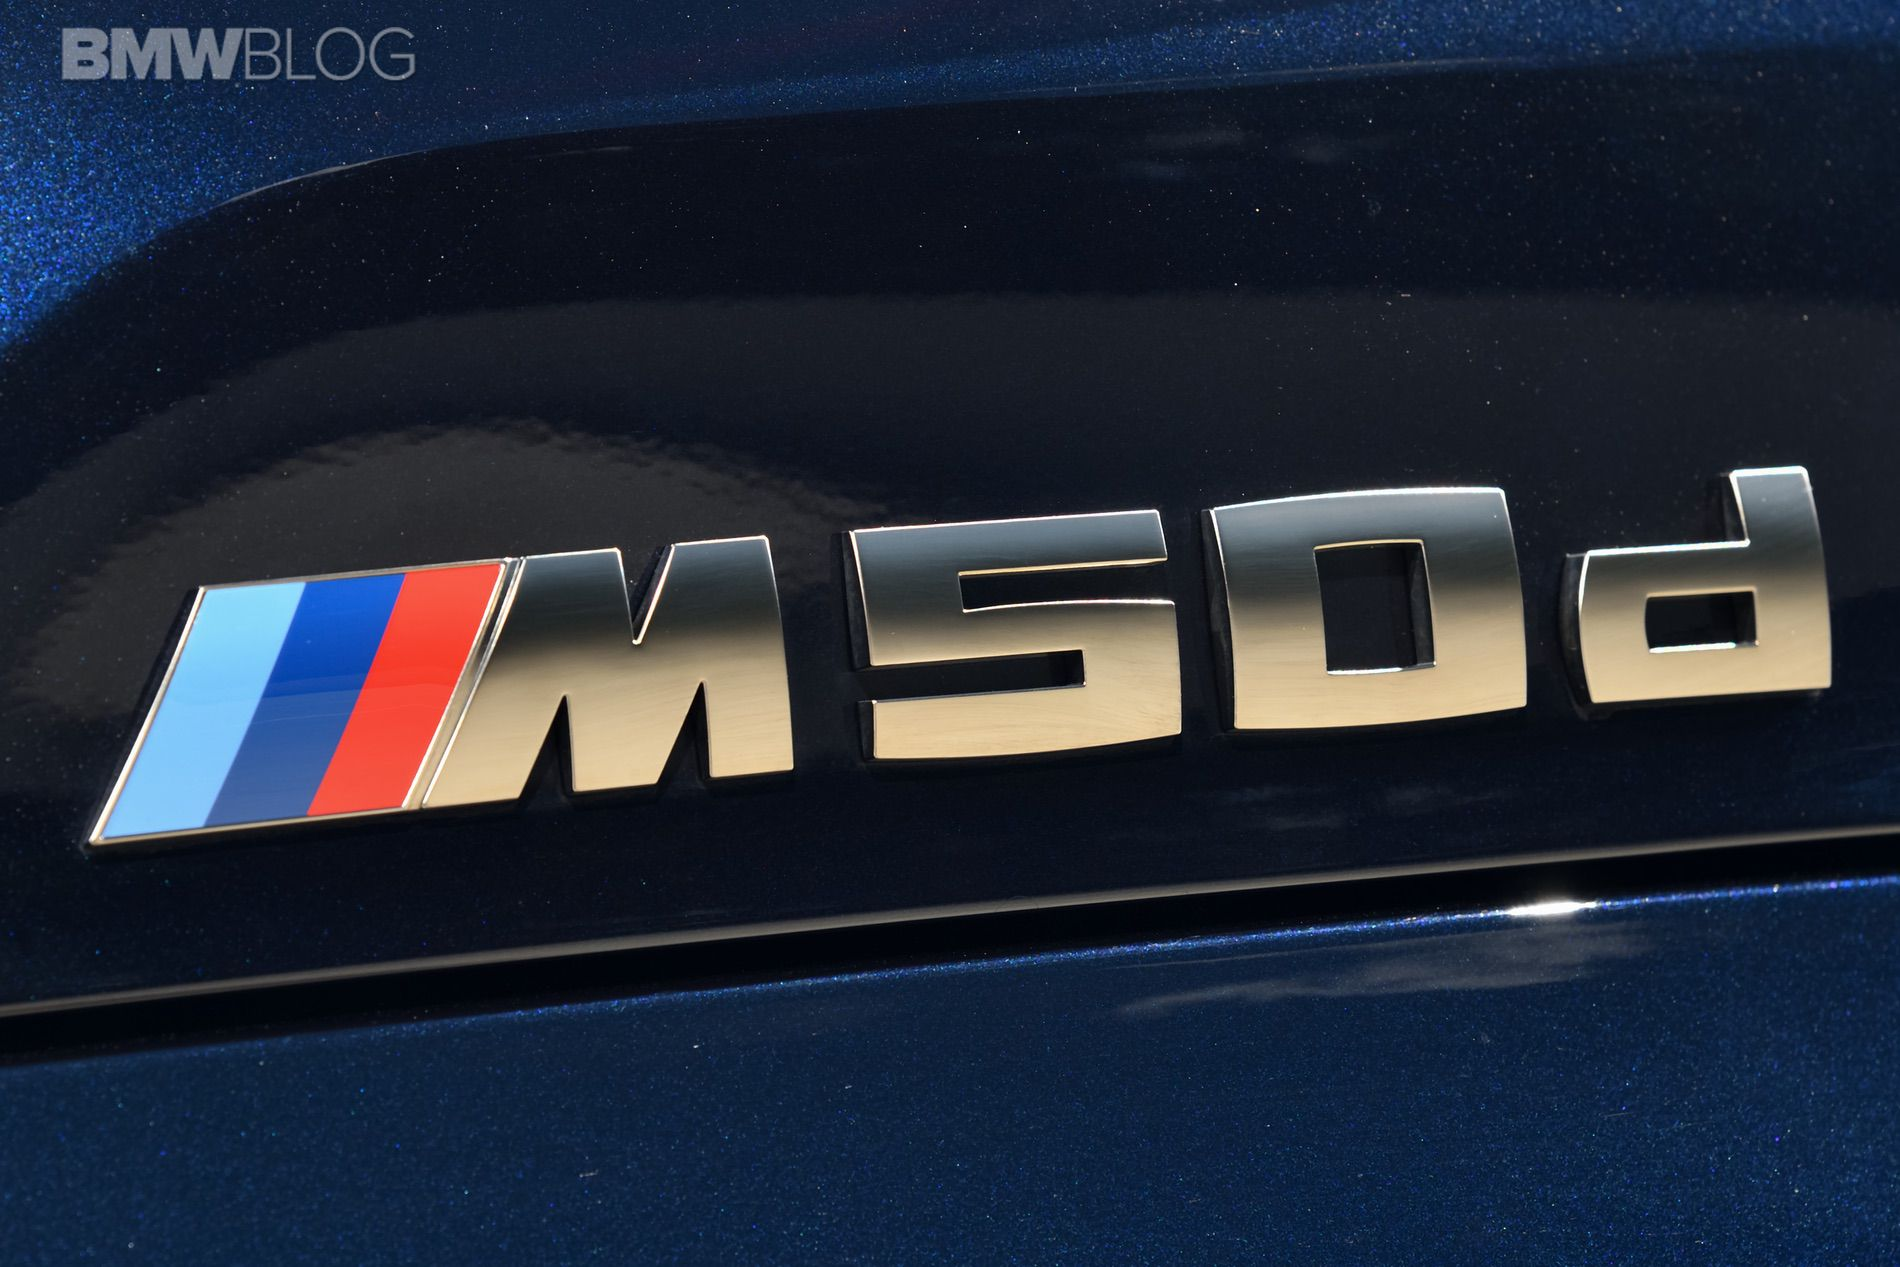 Video: BMW X7 M50d Performance Tested on the Autobahn